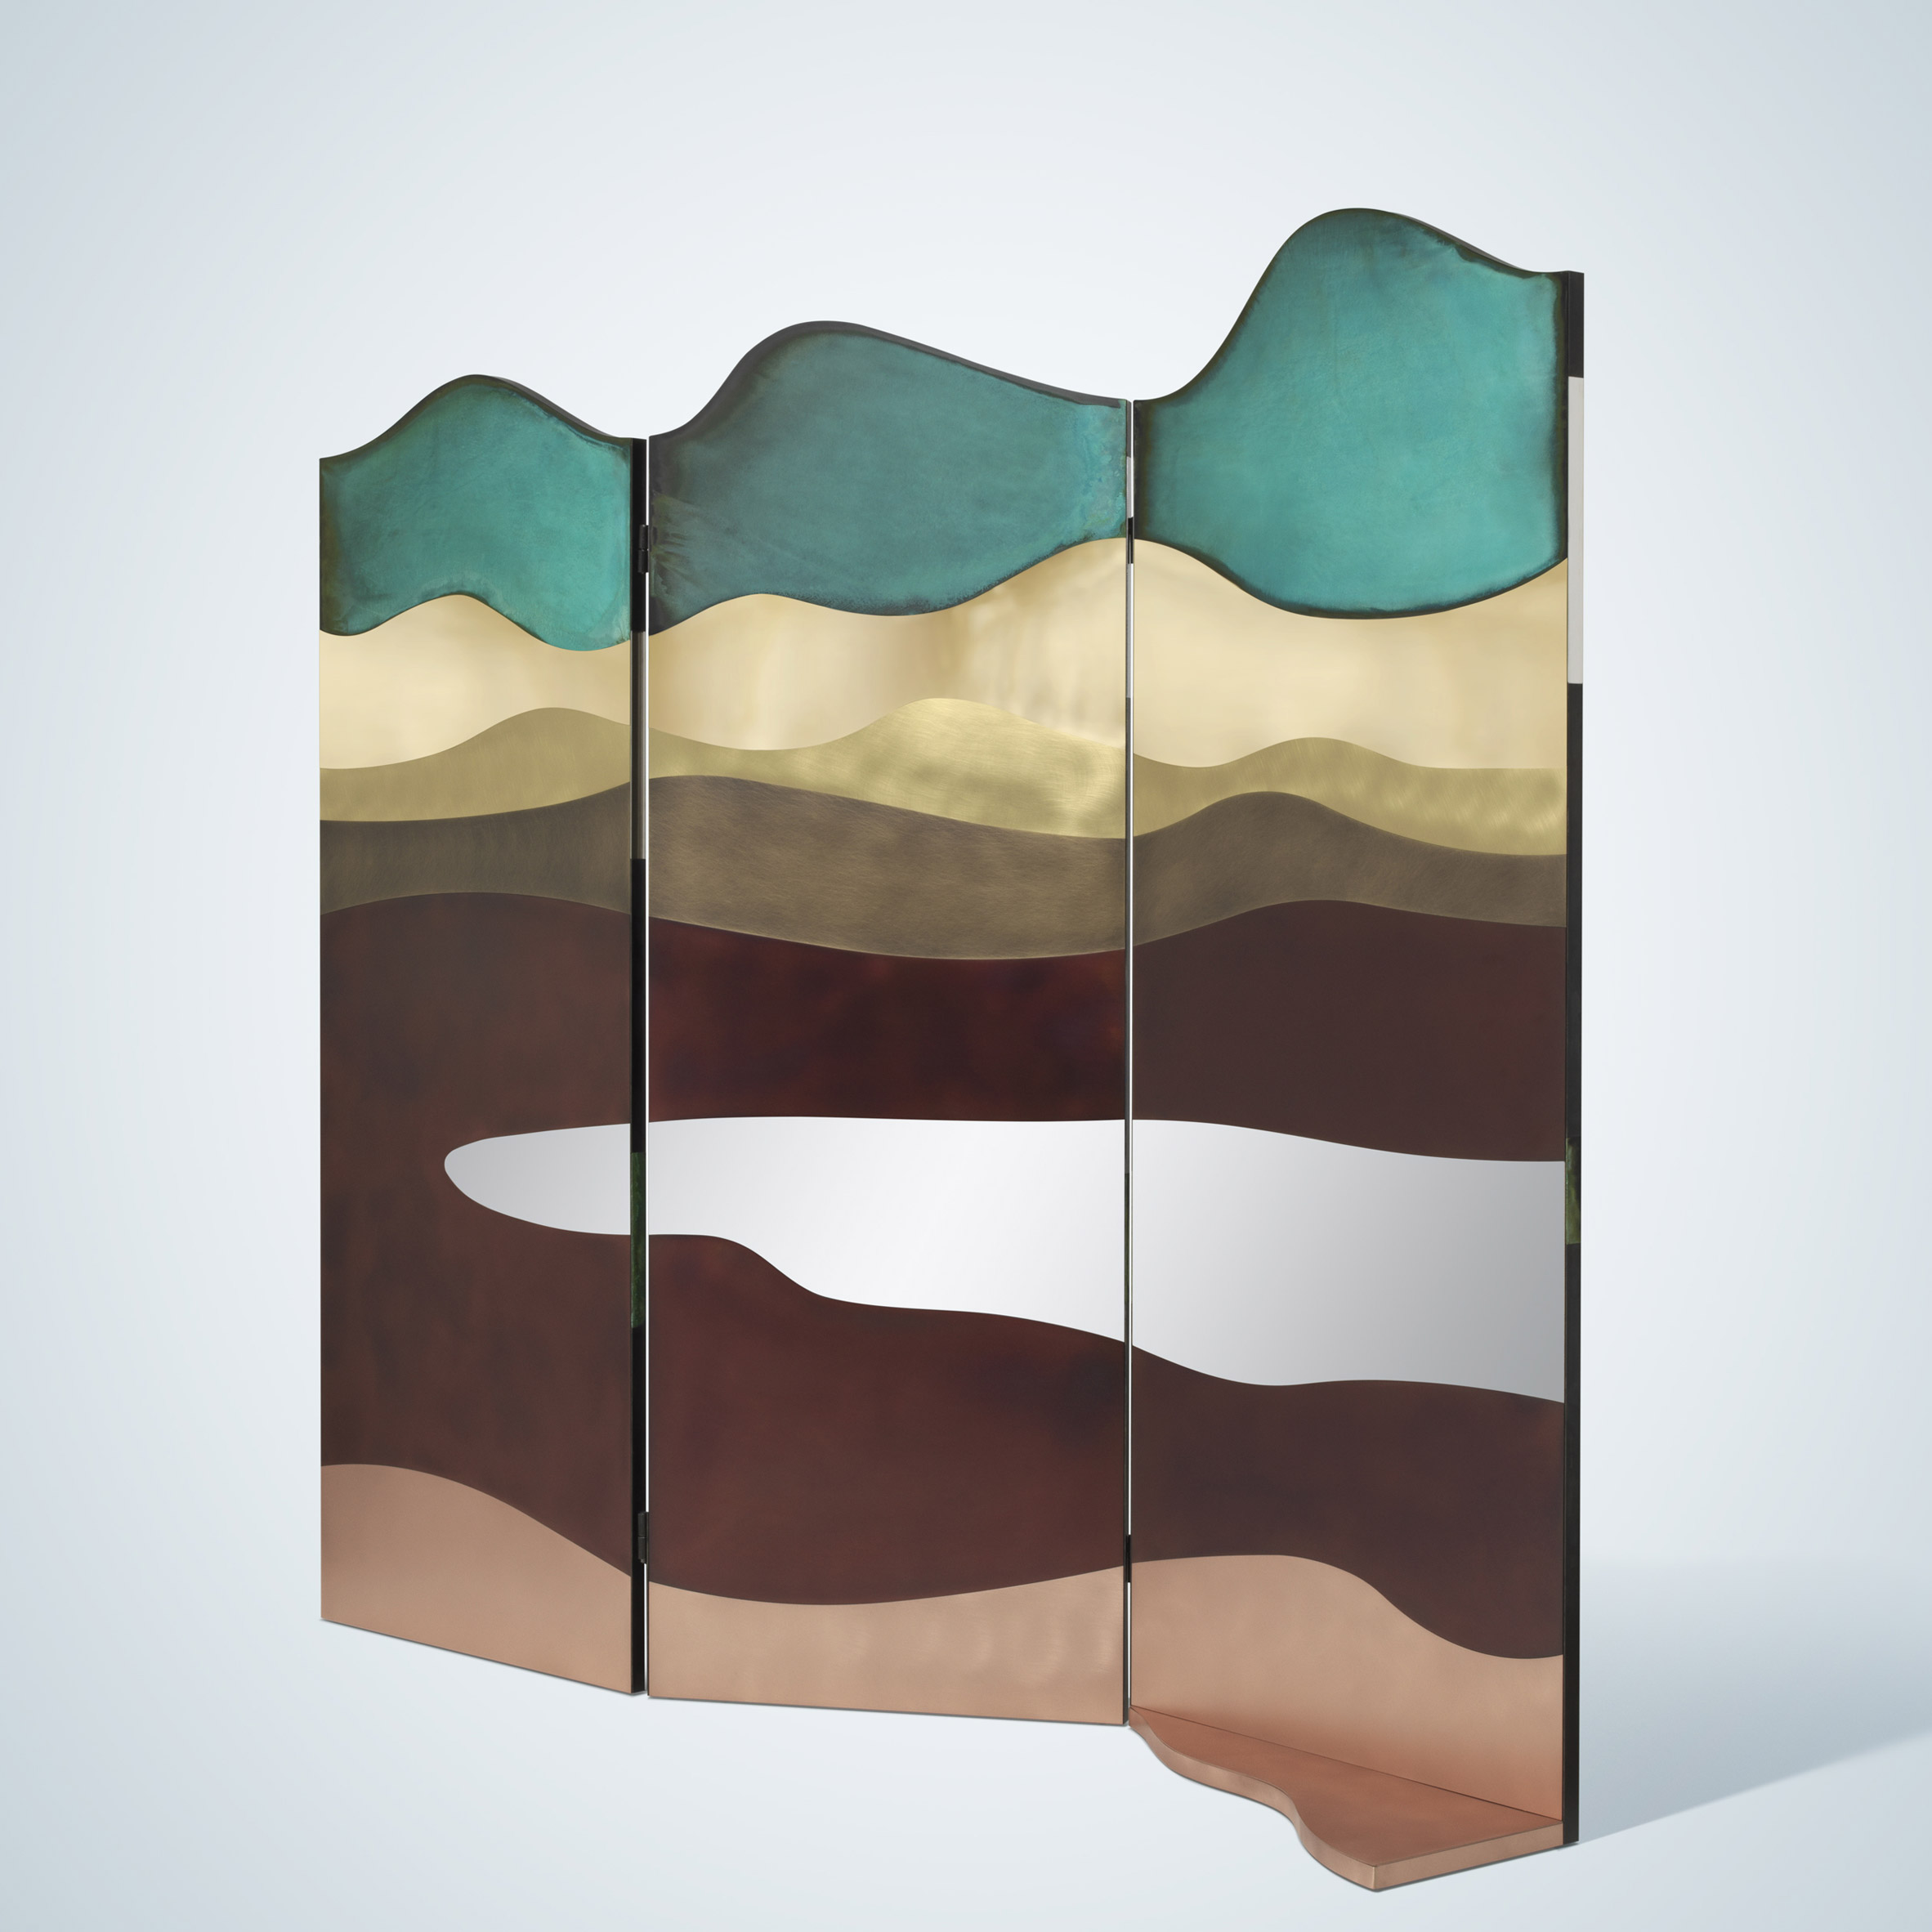 tracing-identity-milan-design-week-furniture_baldereschi_painting_dezeen_2364_col_0